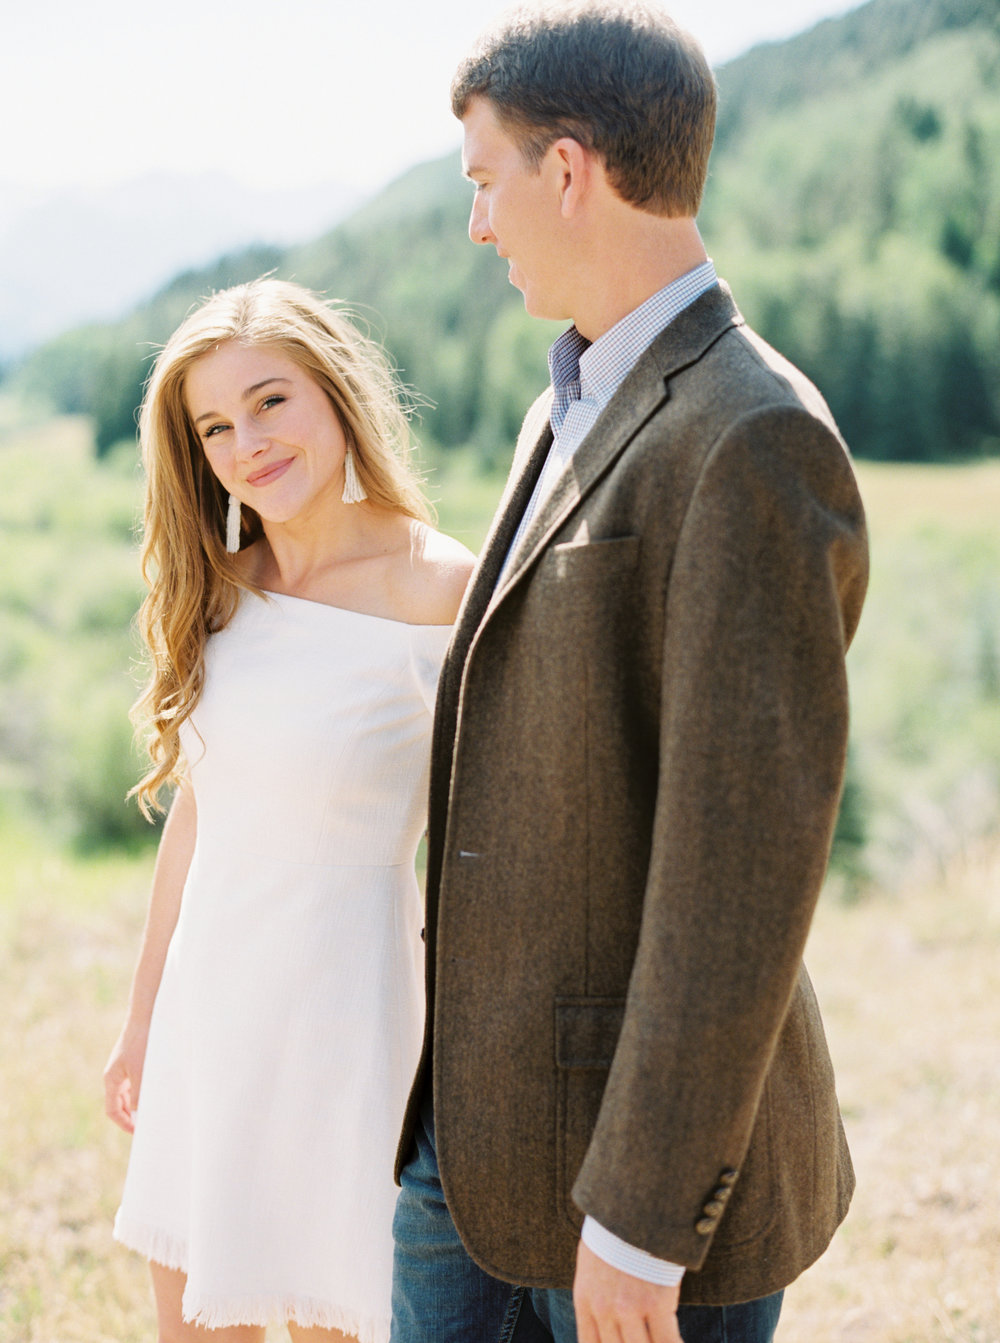 Engagement Session Outfits-60.jpg